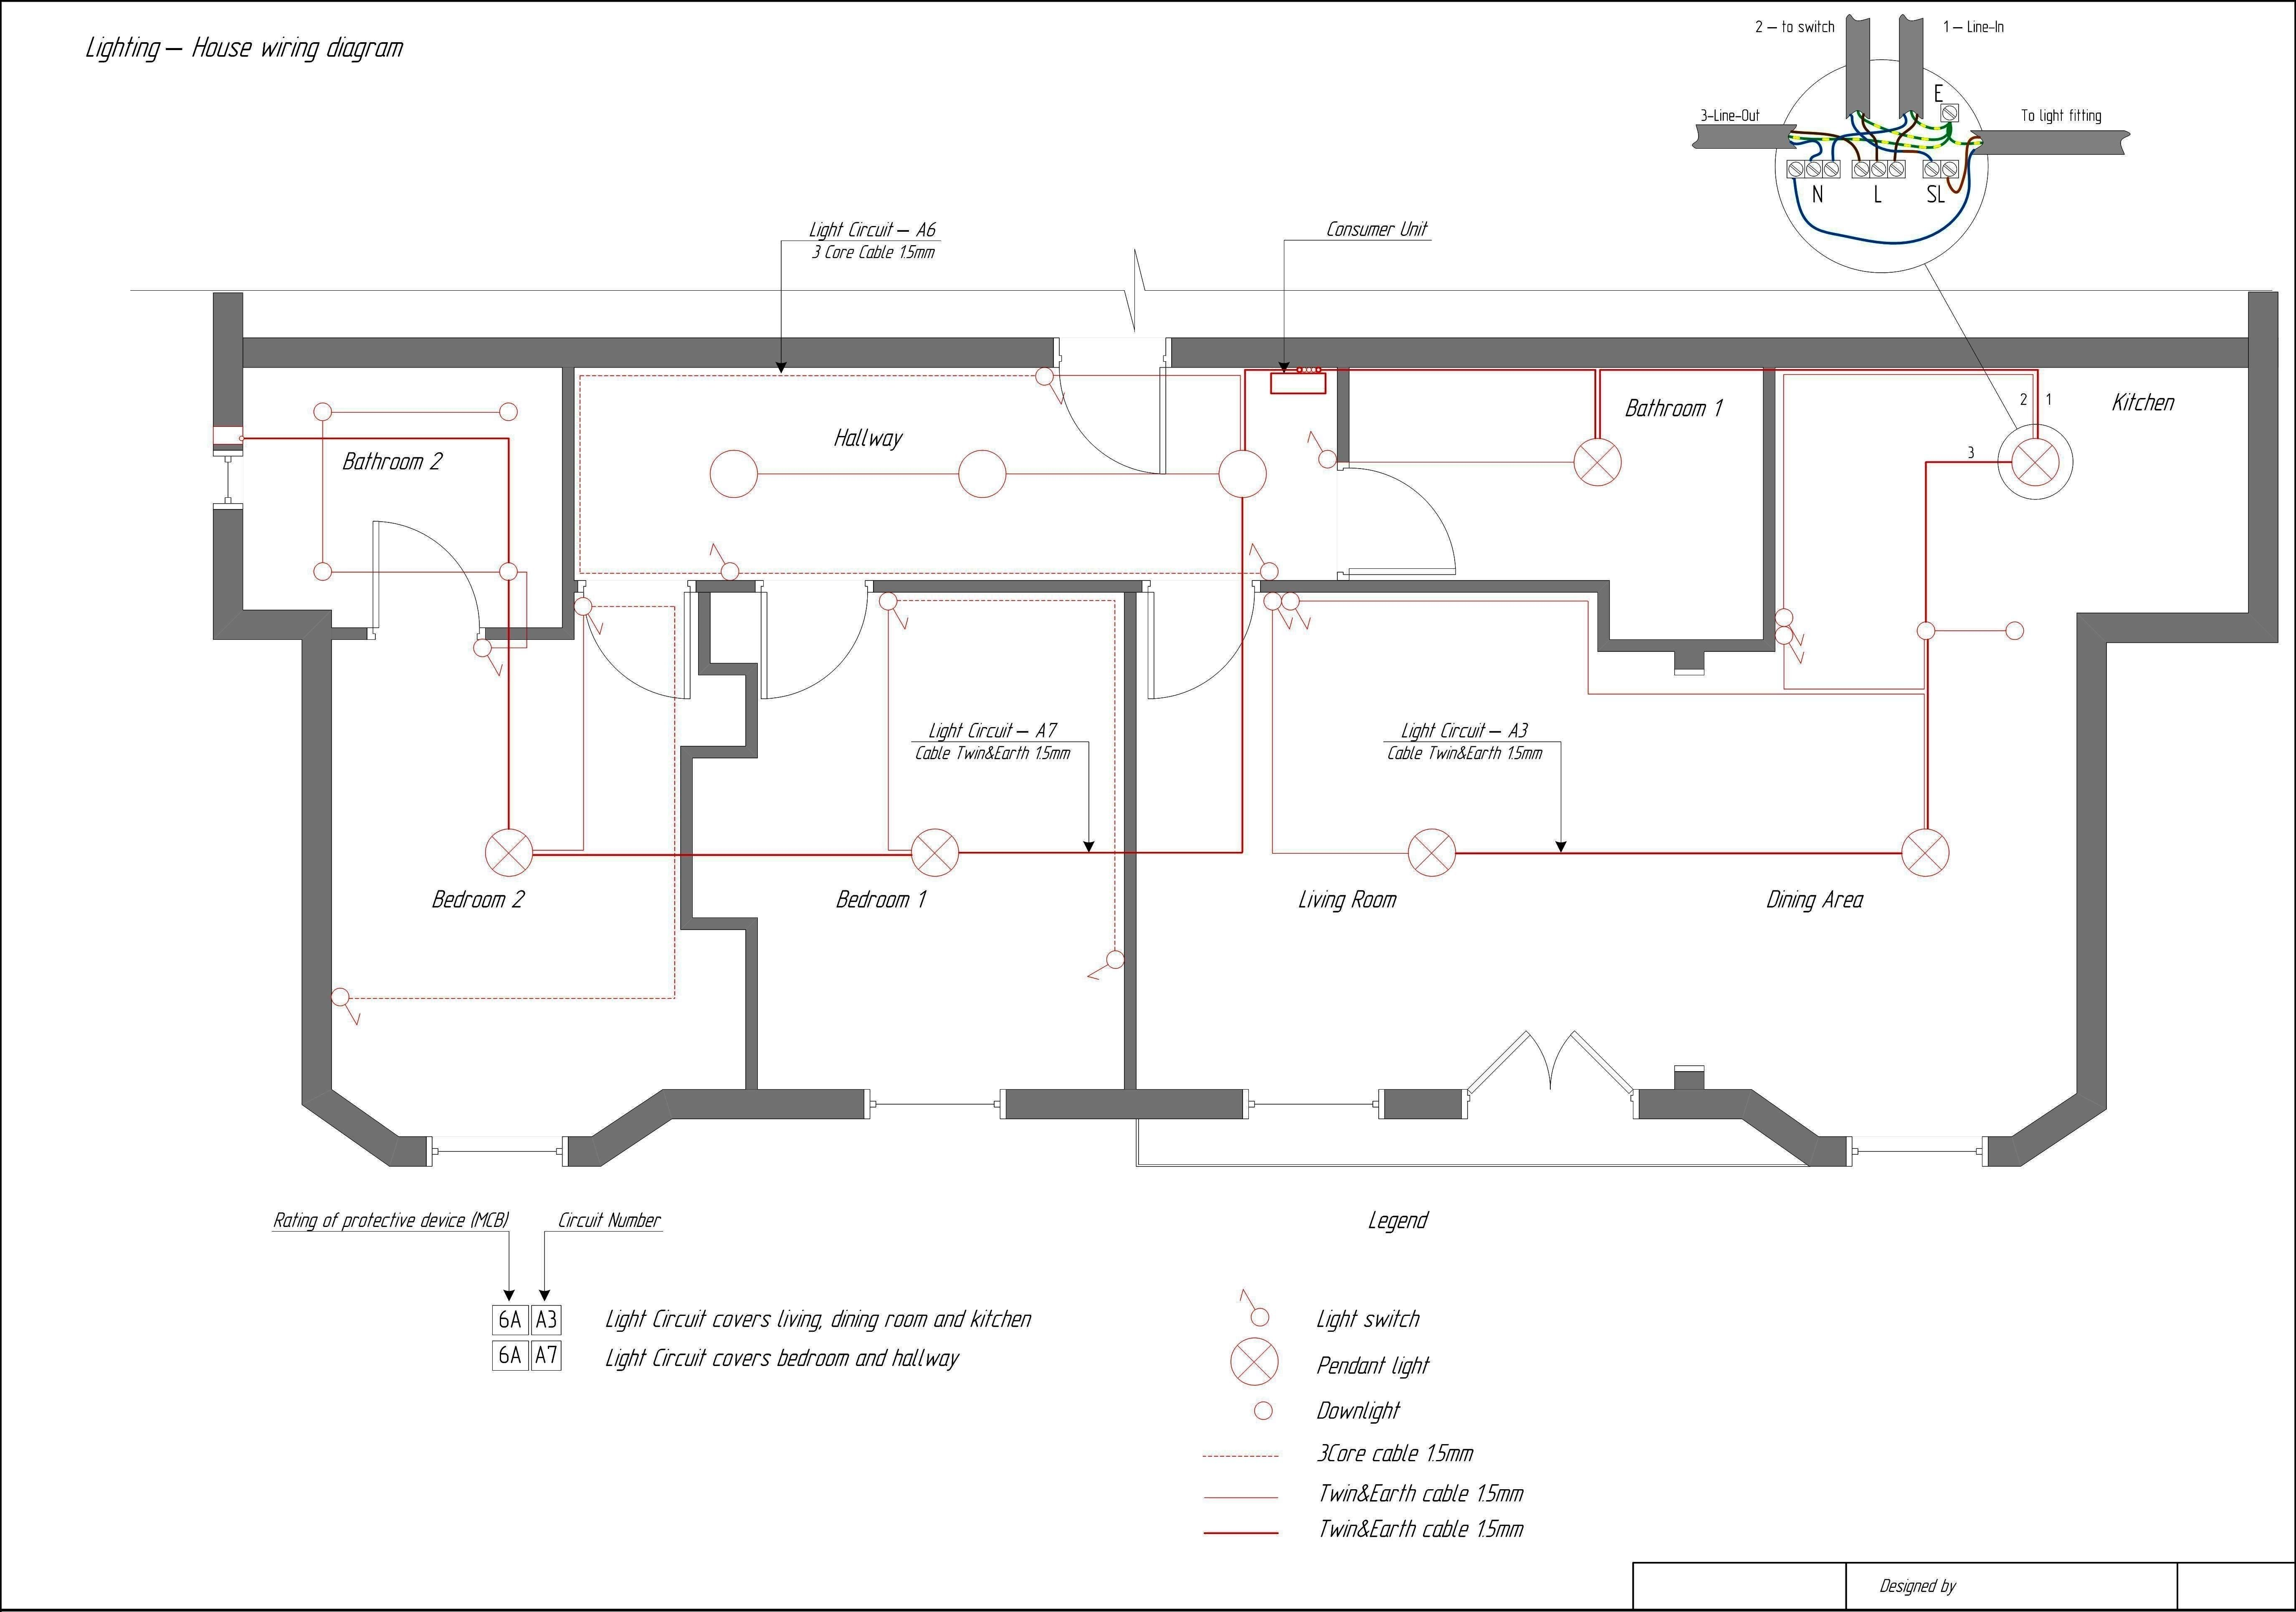 Electrical Wiring Diagram Books In 2020 House Wiring Home Electrical Wiring Electrical Circuit Diagram